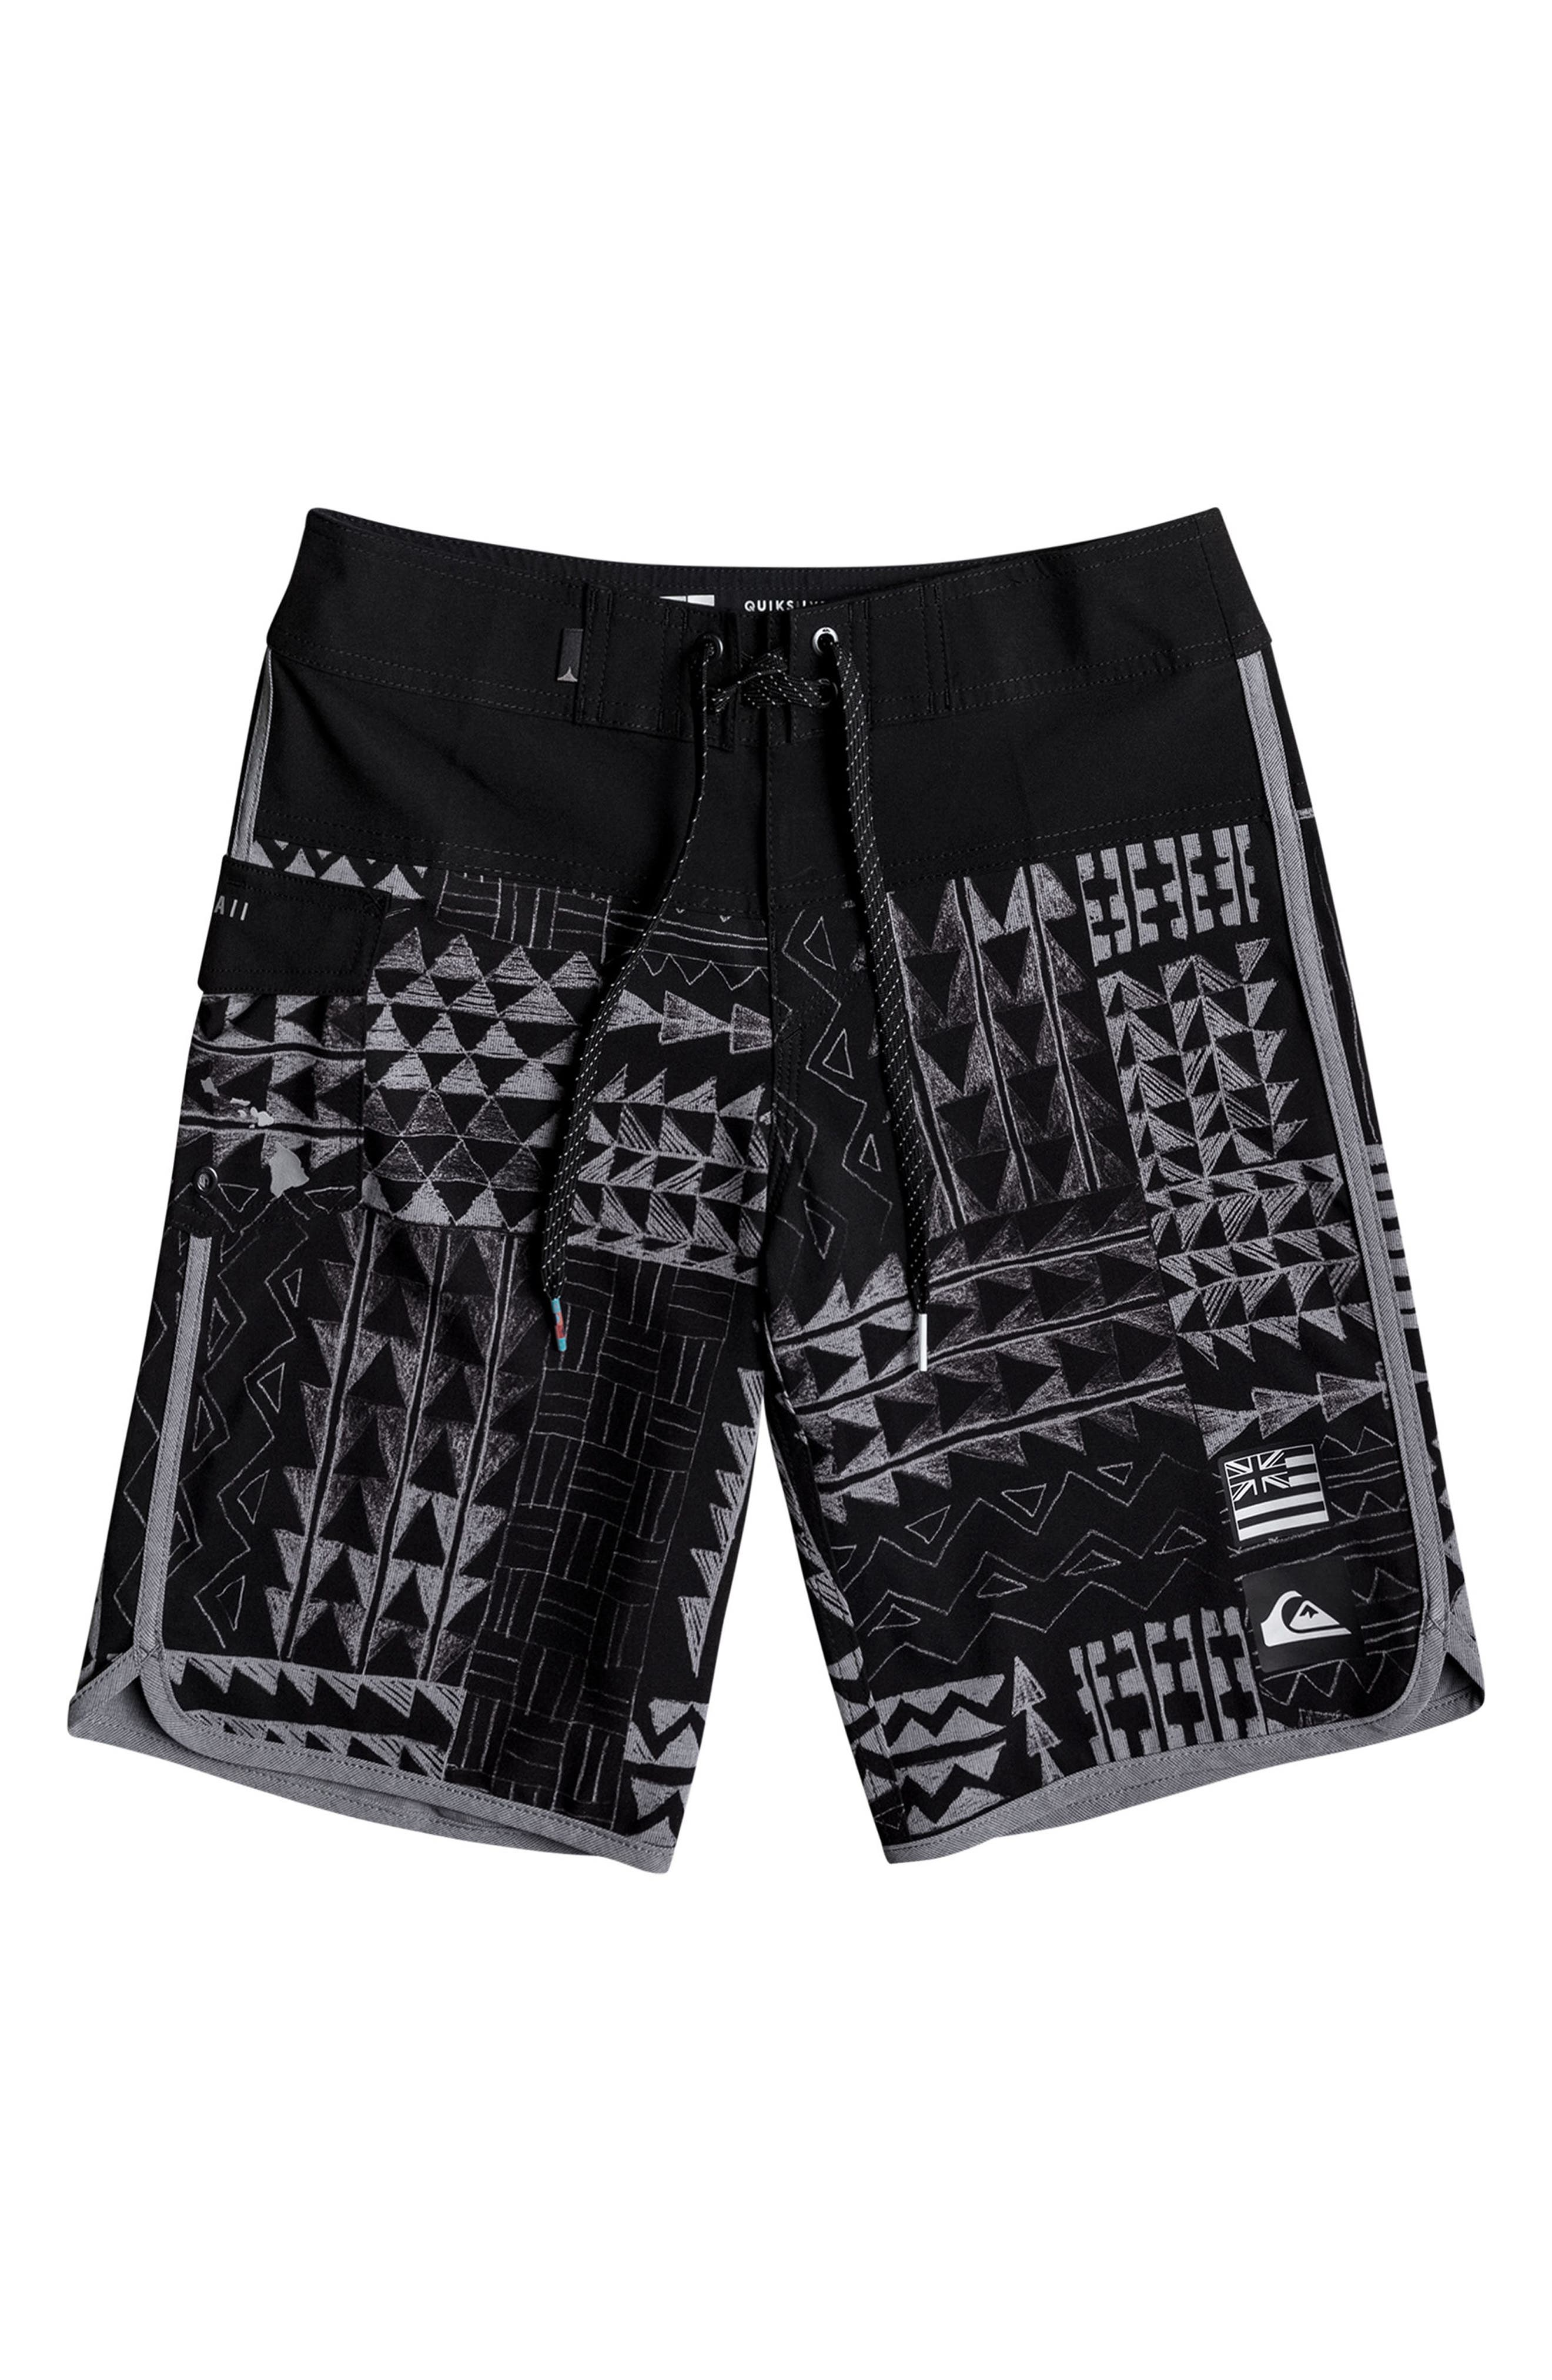 Alternate Image 1 Selected - Quiksilver Hawaii Scallop Board Shorts (Big Boys)